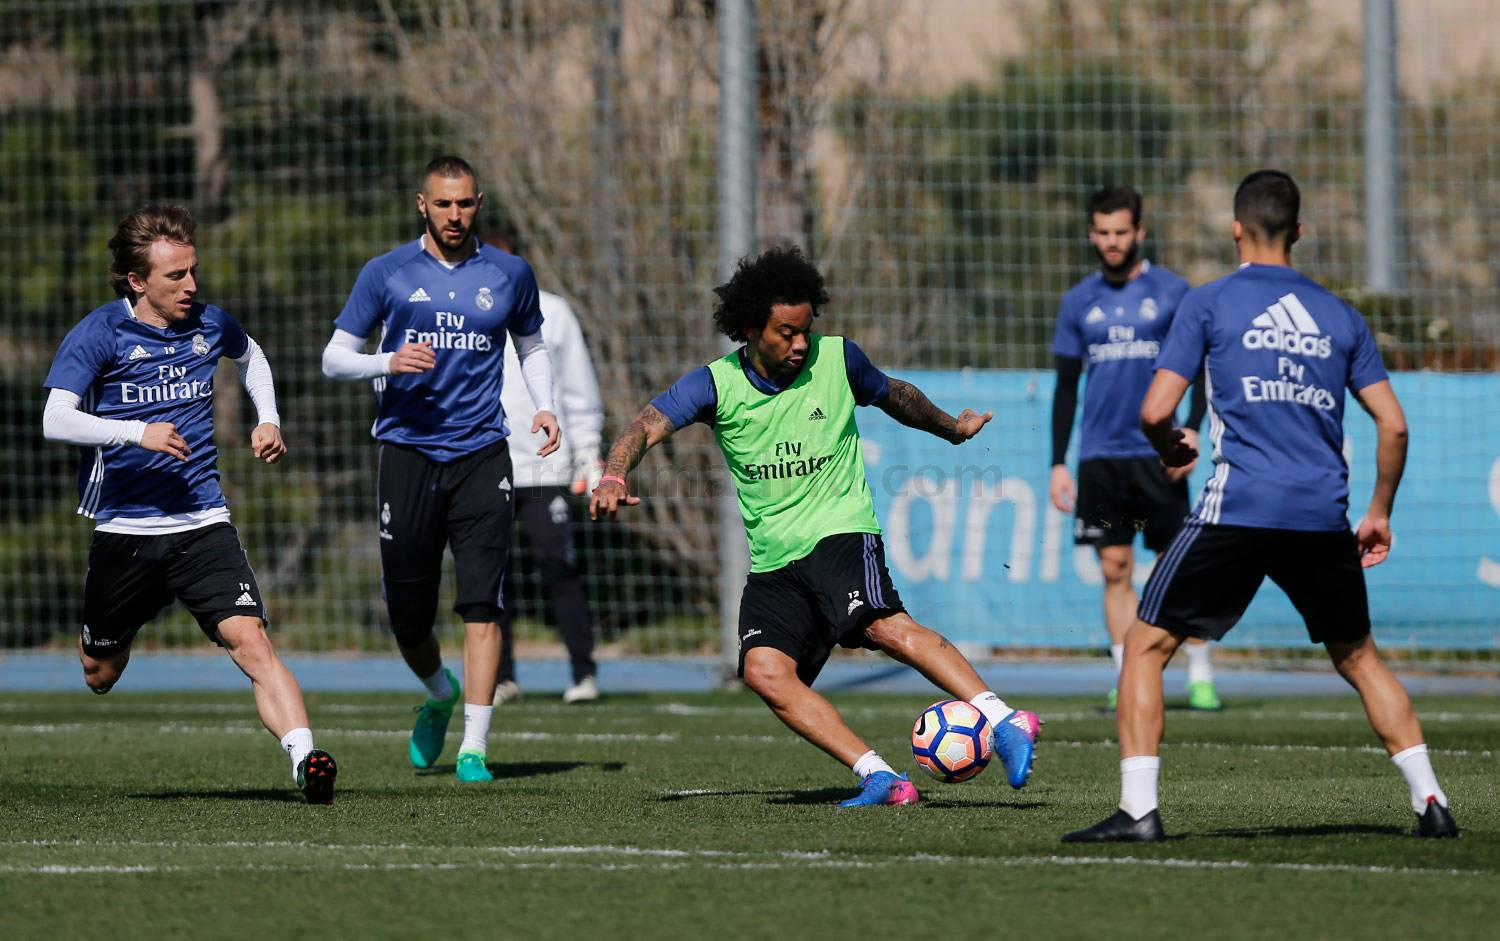 Real Madrid - Entrenamiento del Real Madrid - 17-03-2017